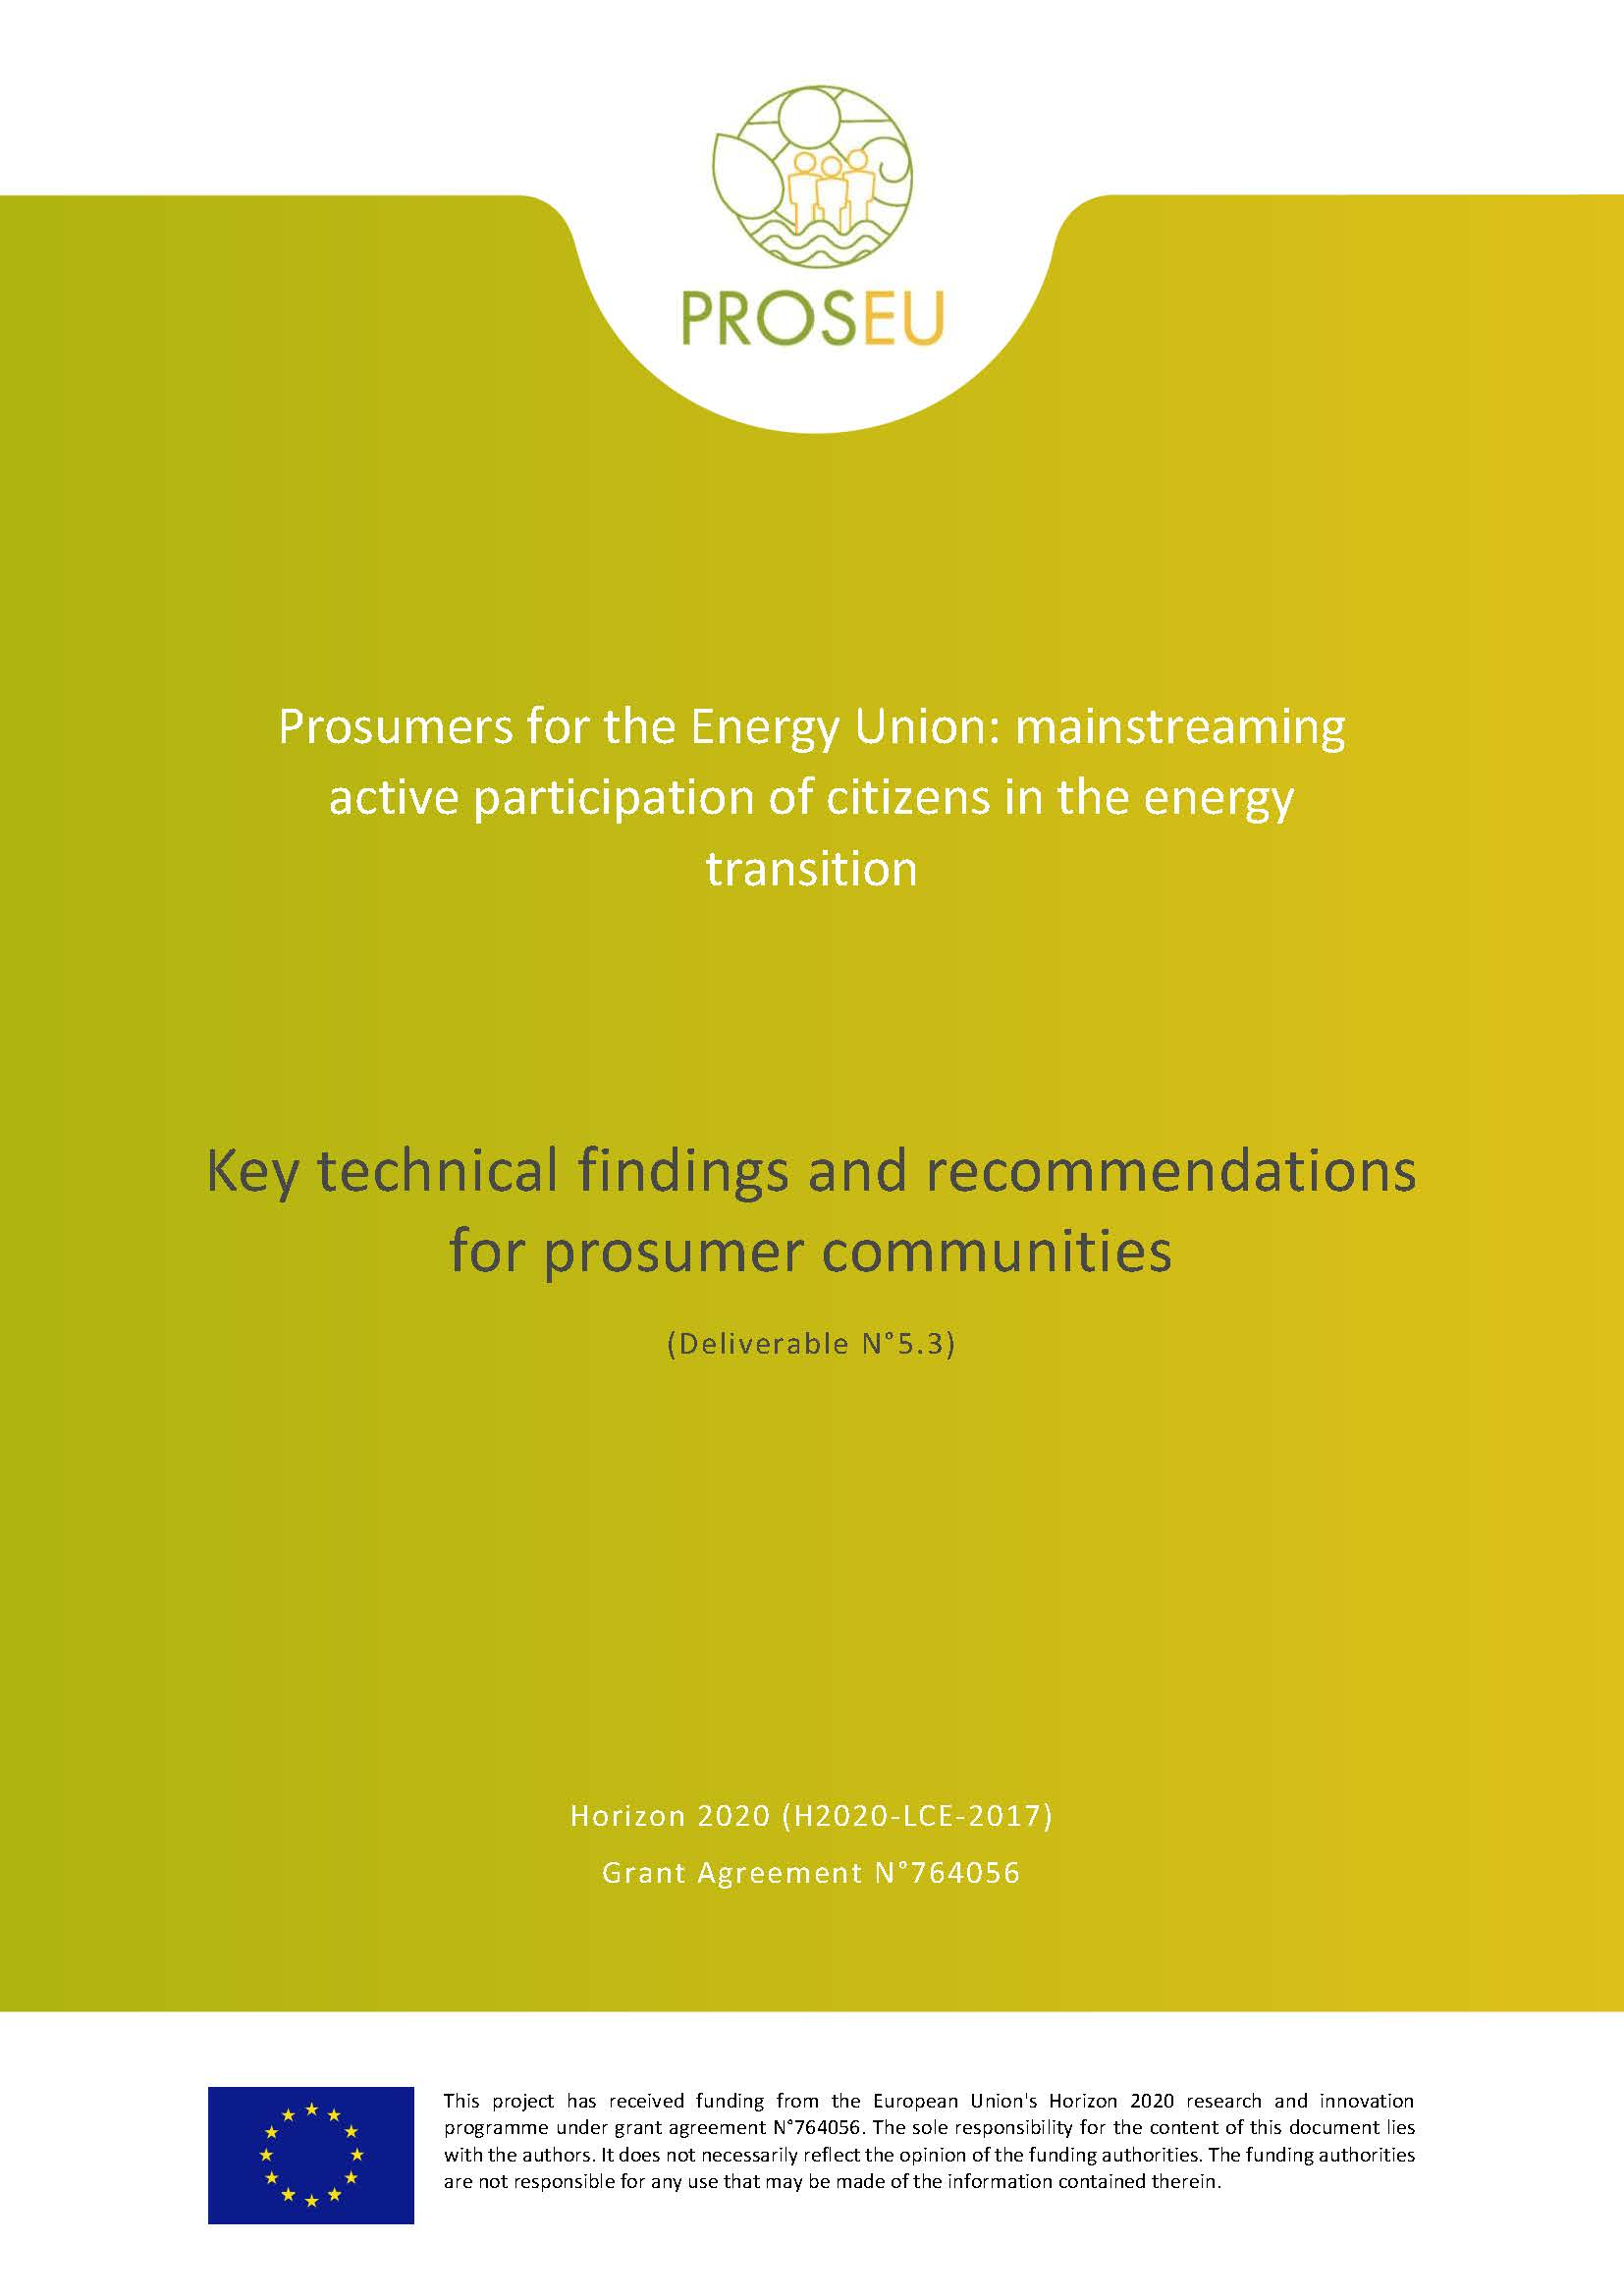 Key technical findings and recommendations for prosumer communities